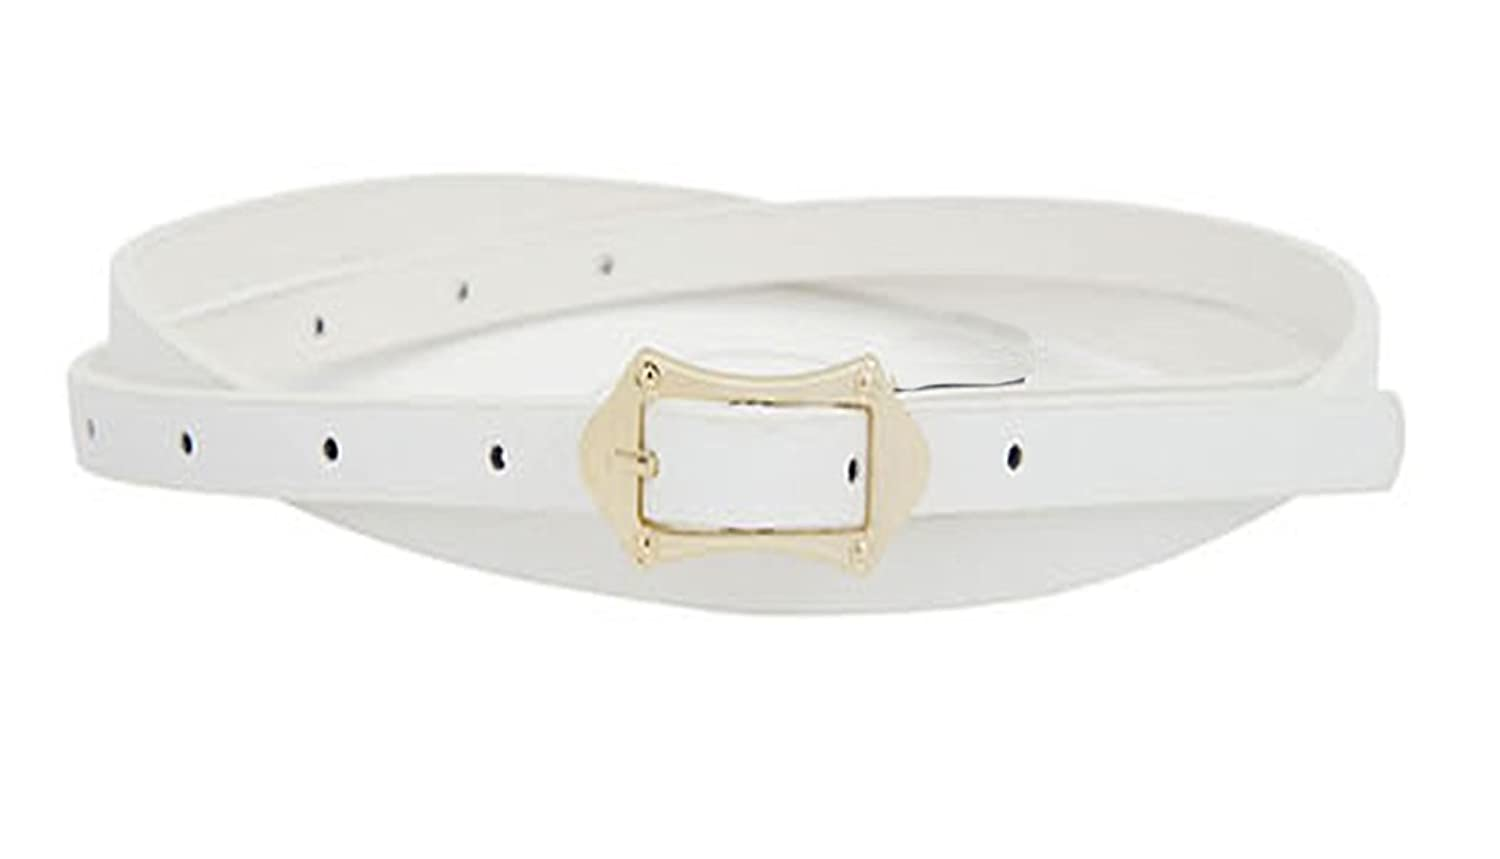 Skinny Belt with Delicate Gold Victorian-inspired Buckle